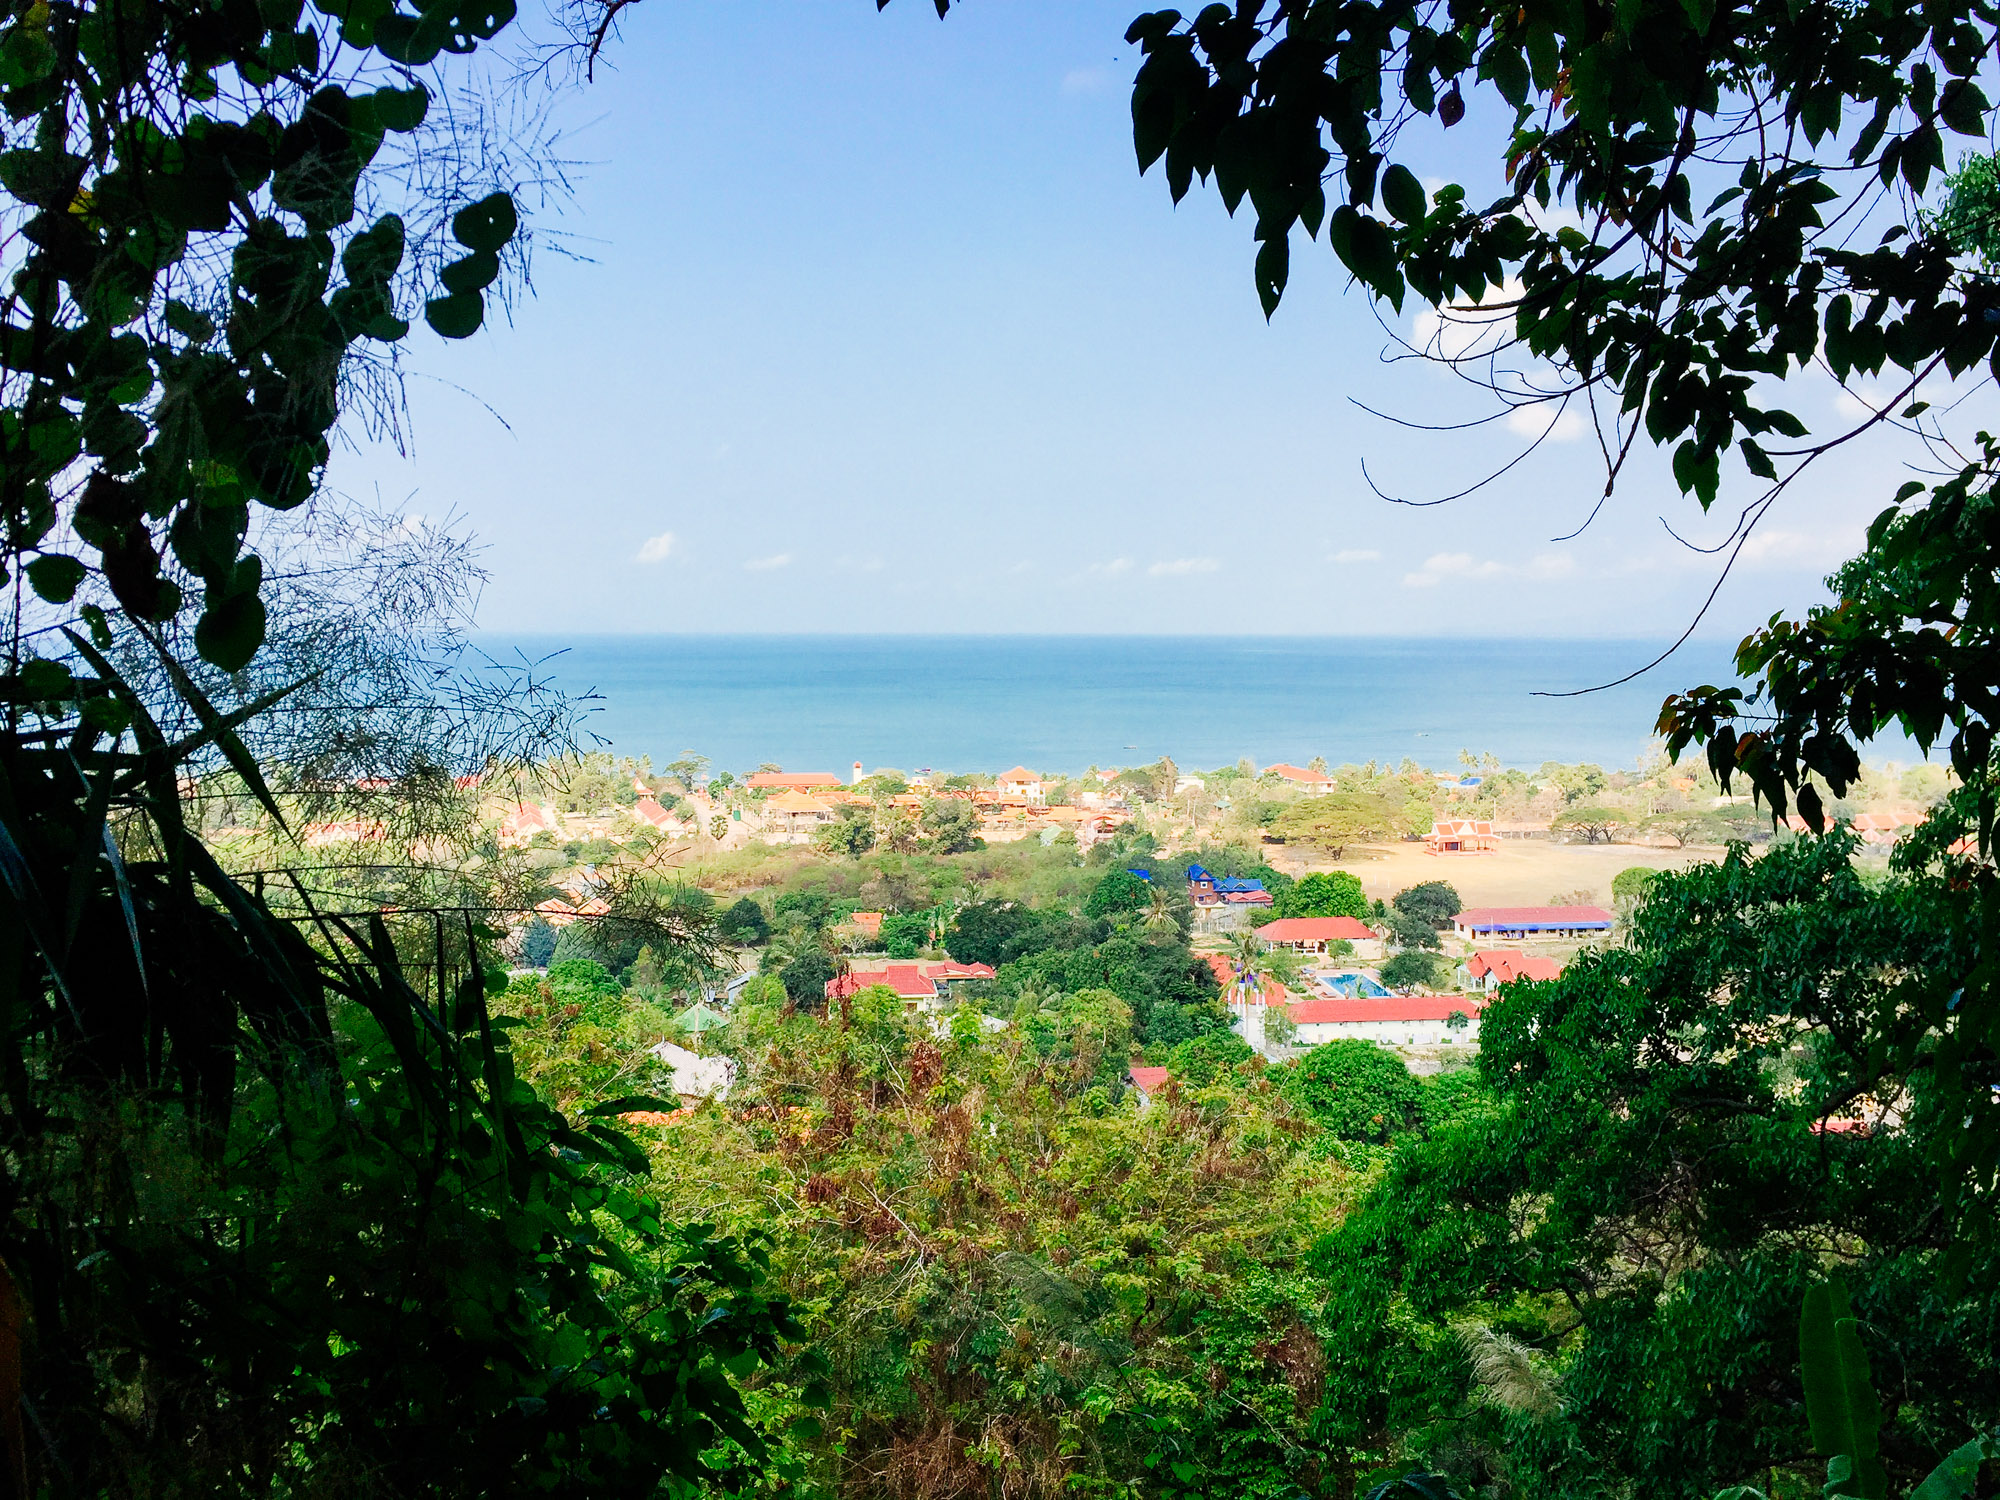 Driving up the road in Kep National Park